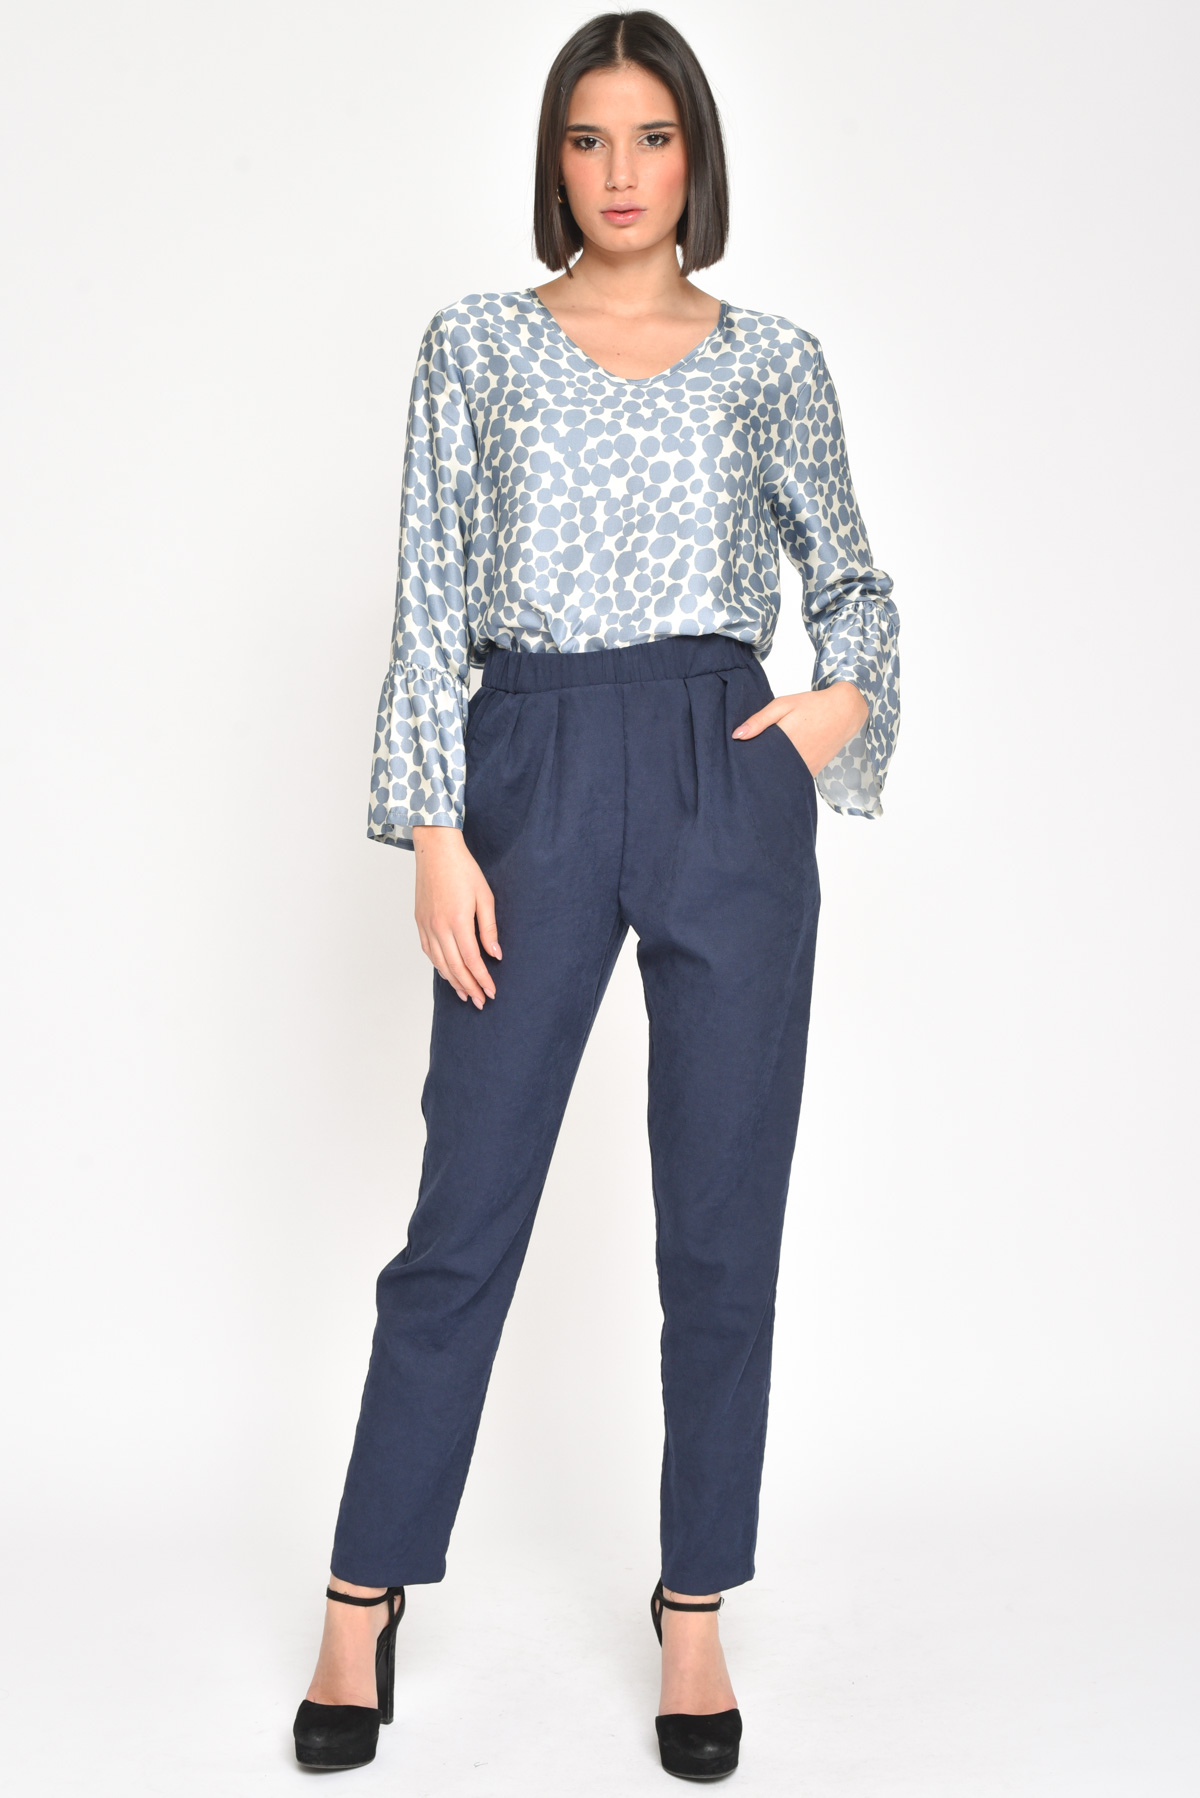 PANTALONE CON  ELASTICO ULTRA LEGGERI for women - BLUE - Paquito Pronto Moda Shop Online